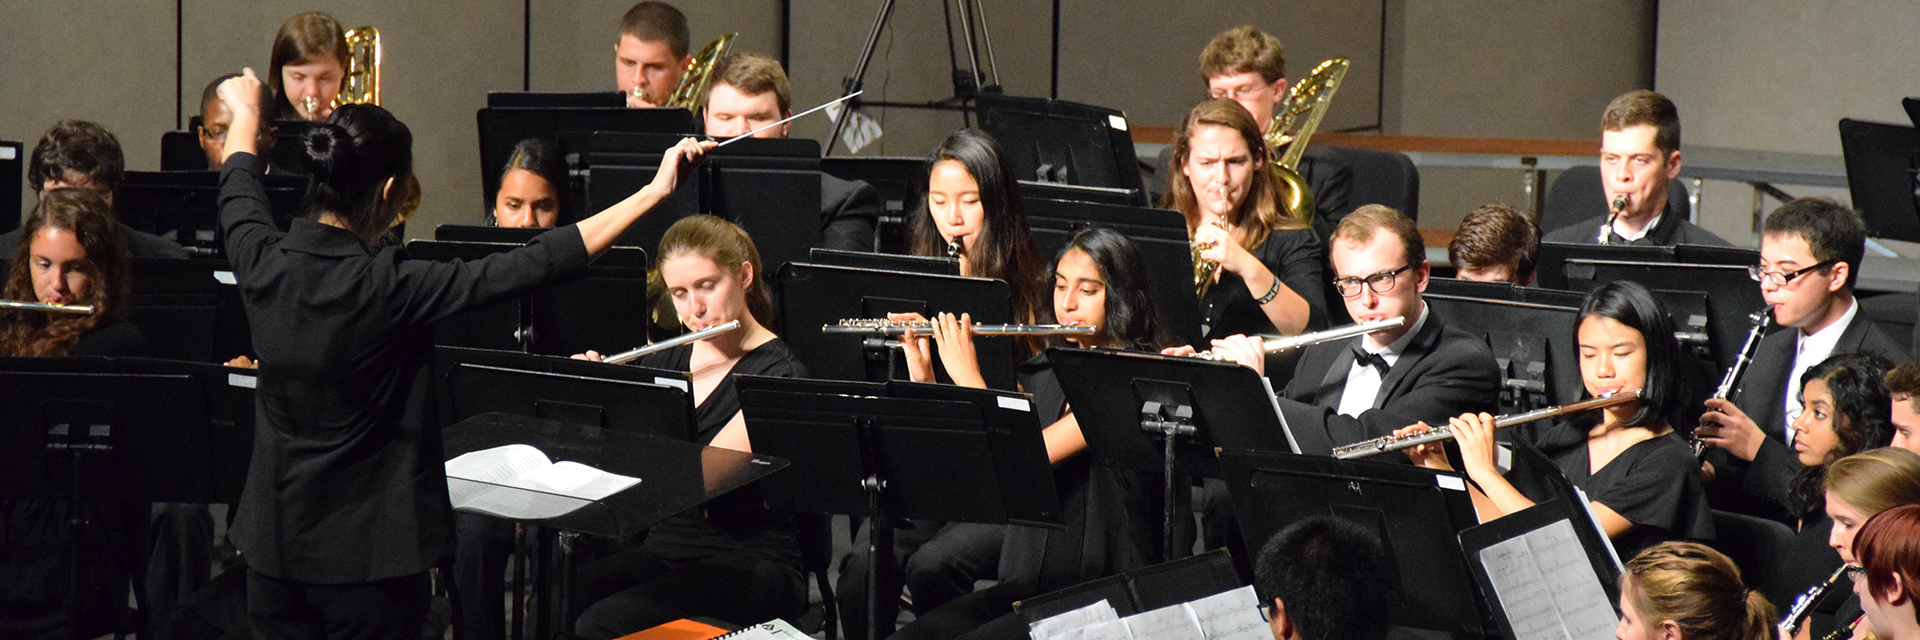 The Concert Band performing at Georgia Tech's Ferst Center for the Arts.